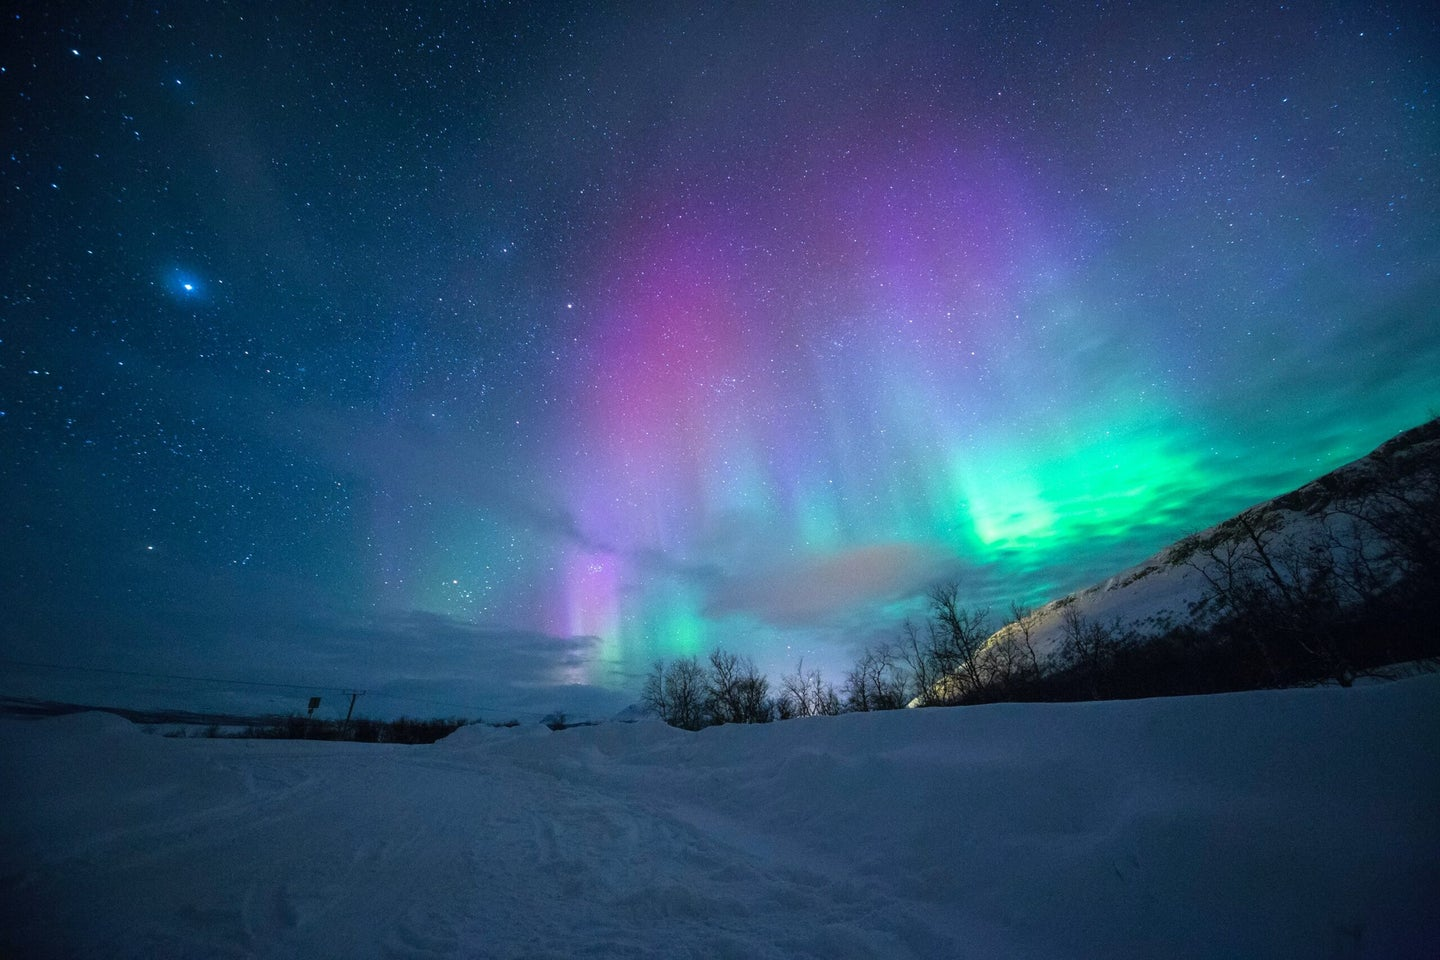 Aurora sky over icy winter forest at night